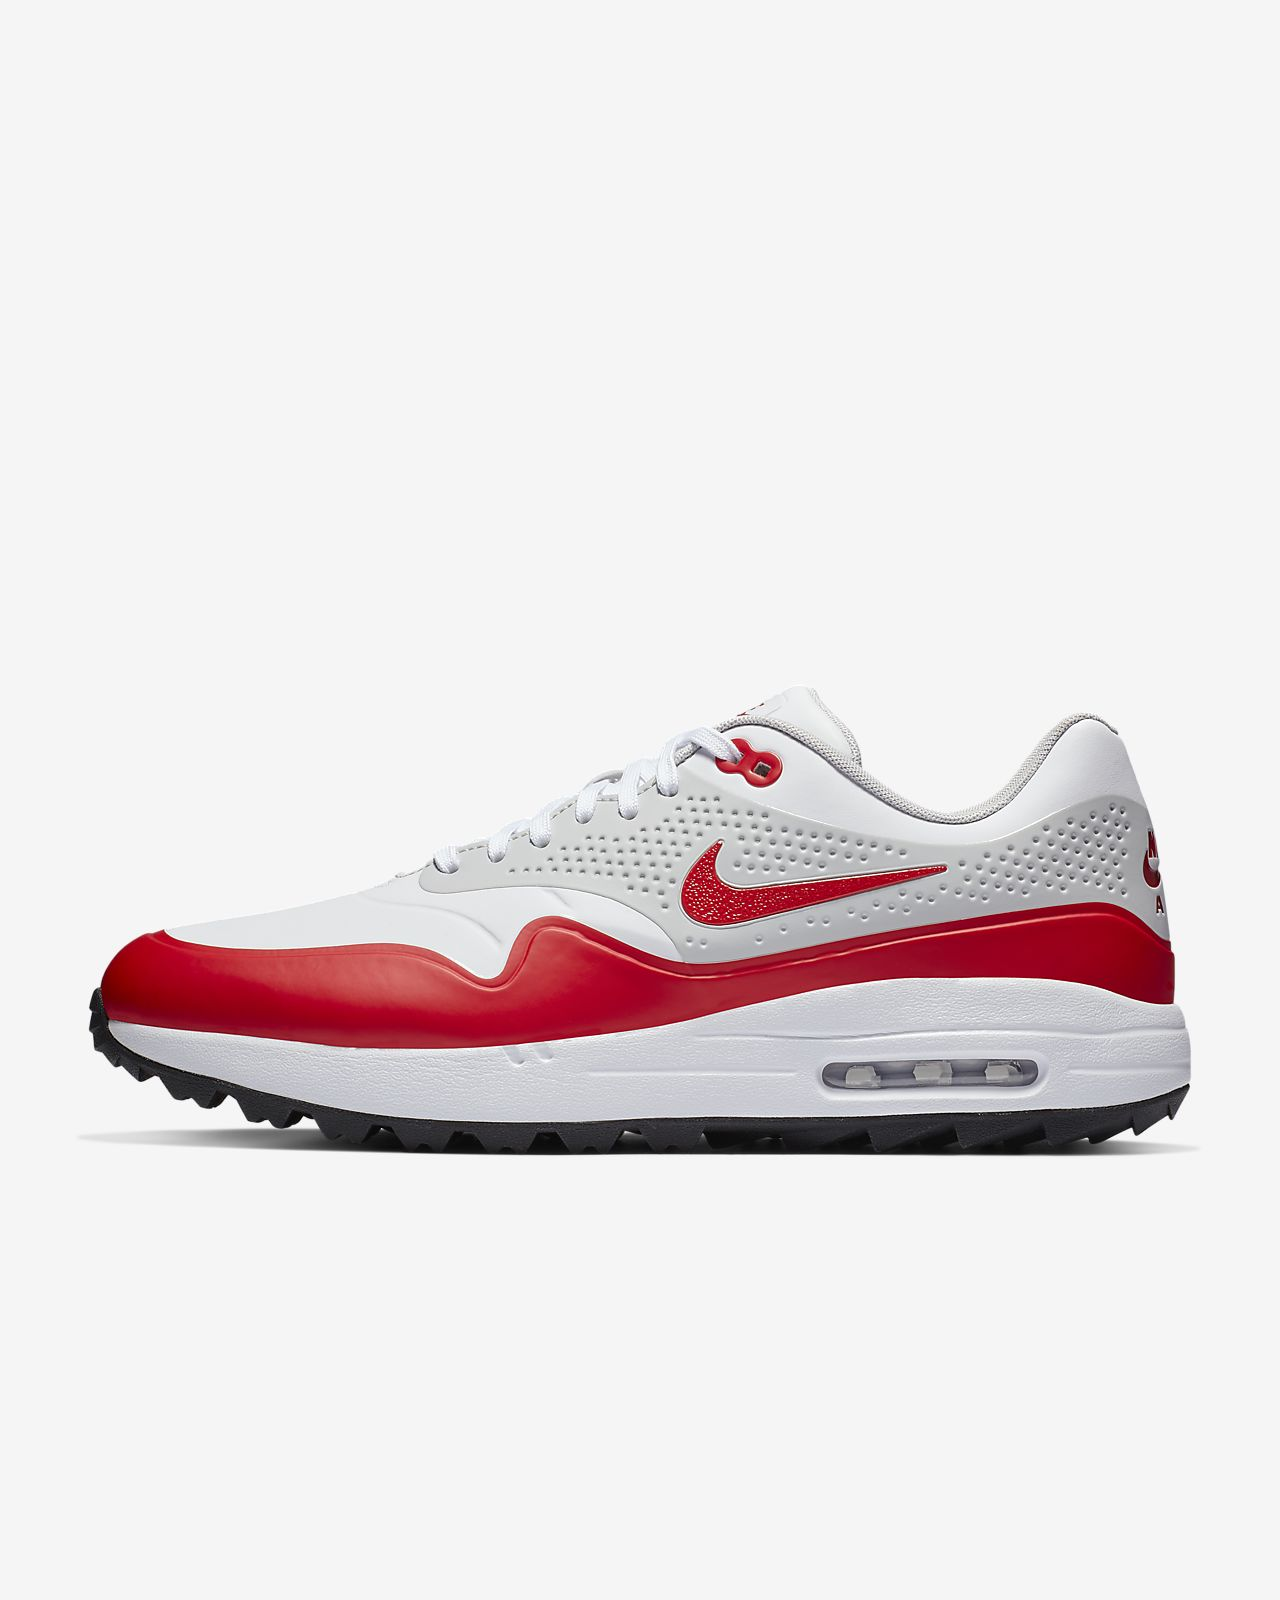 sports shoes f42d9 fa705 ... Chaussure de golf Nike Air Max 1 G pour Homme